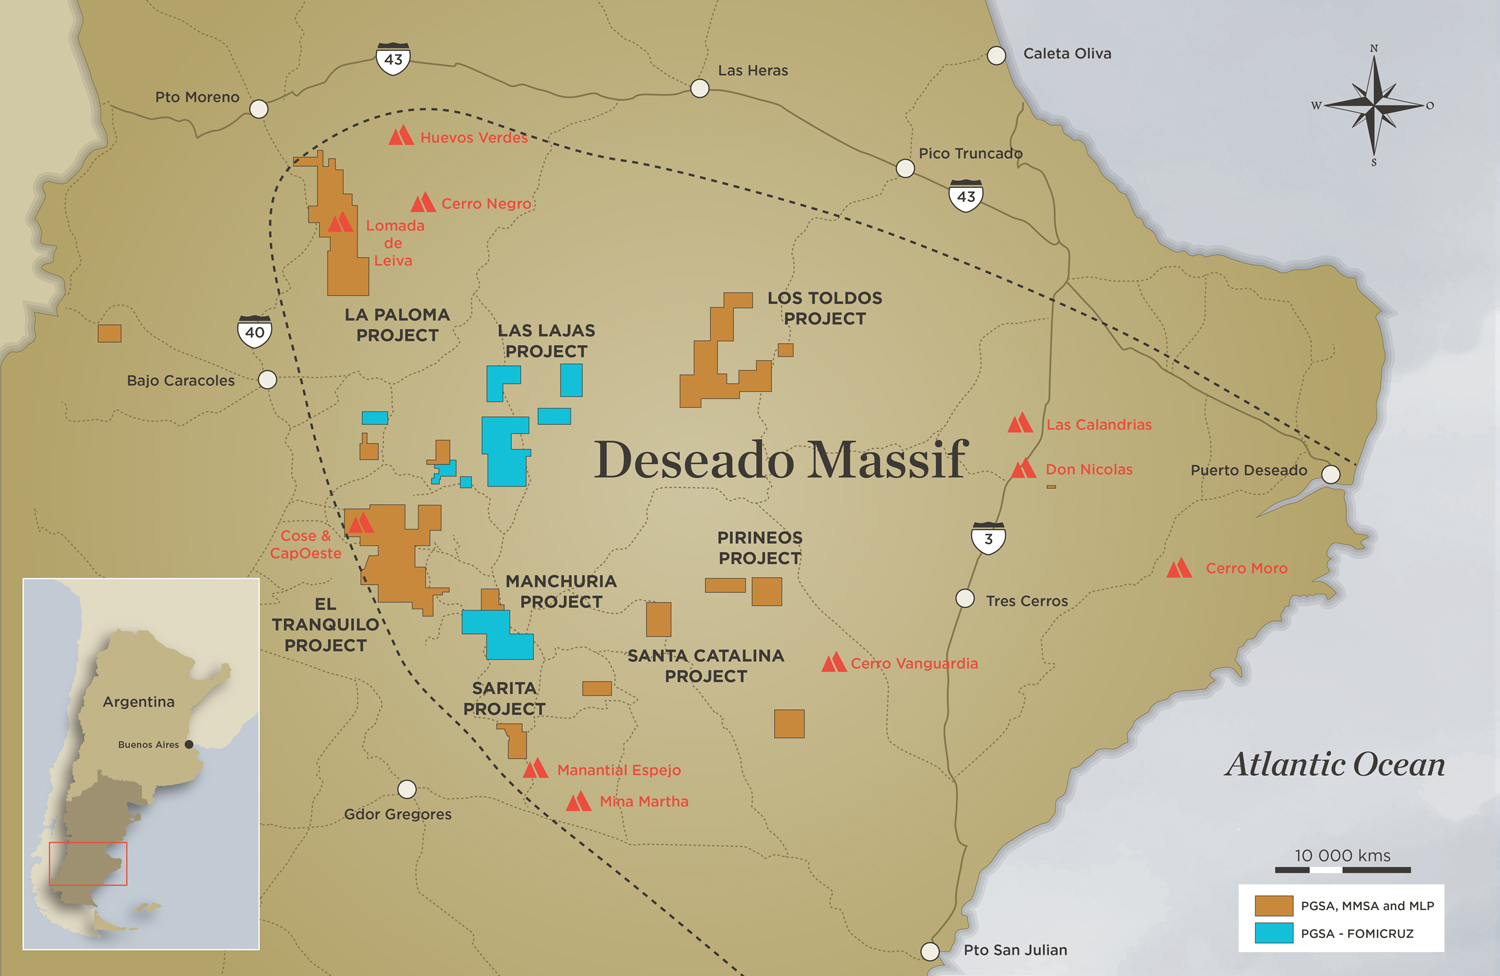 Map of the southern Argentina's Deseado Massif gold-silver district, showing Patagonia Gold's properties and other prominent projects and mines. Credit: Patagonia Gold.